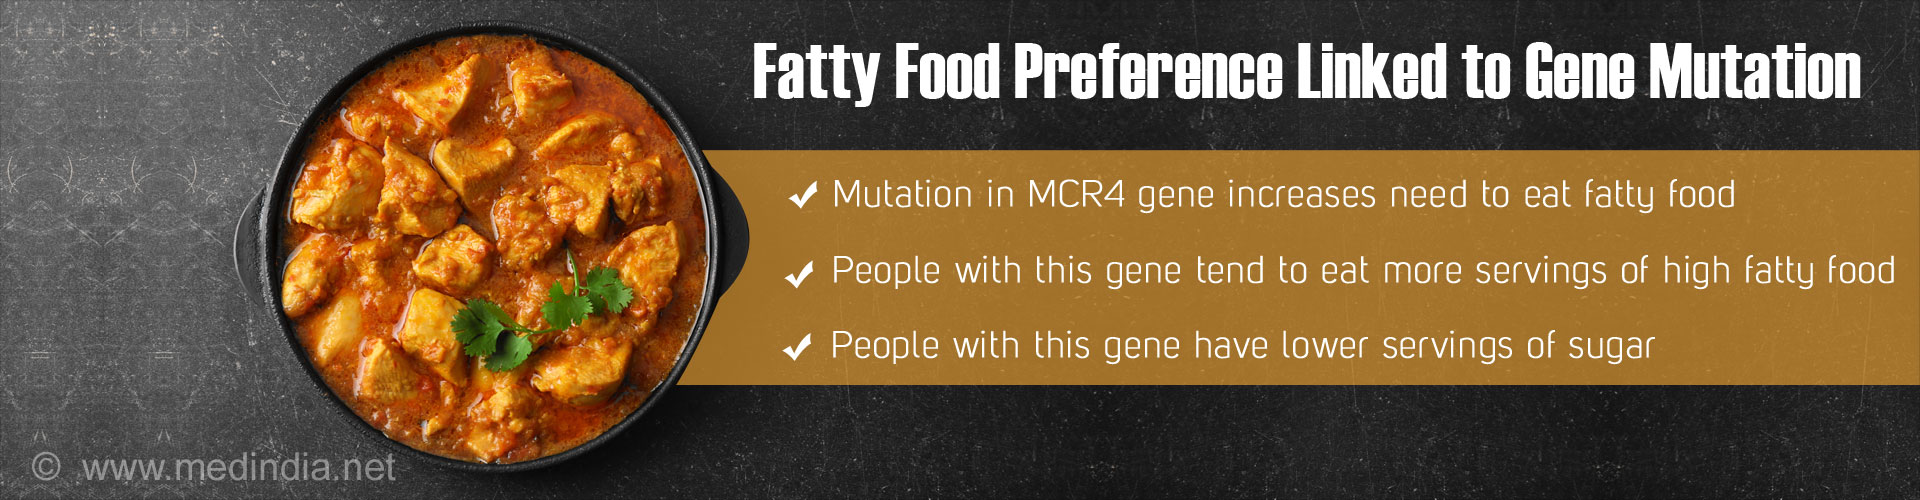 Gene Mutation Could Drive Us to Eat More Fat